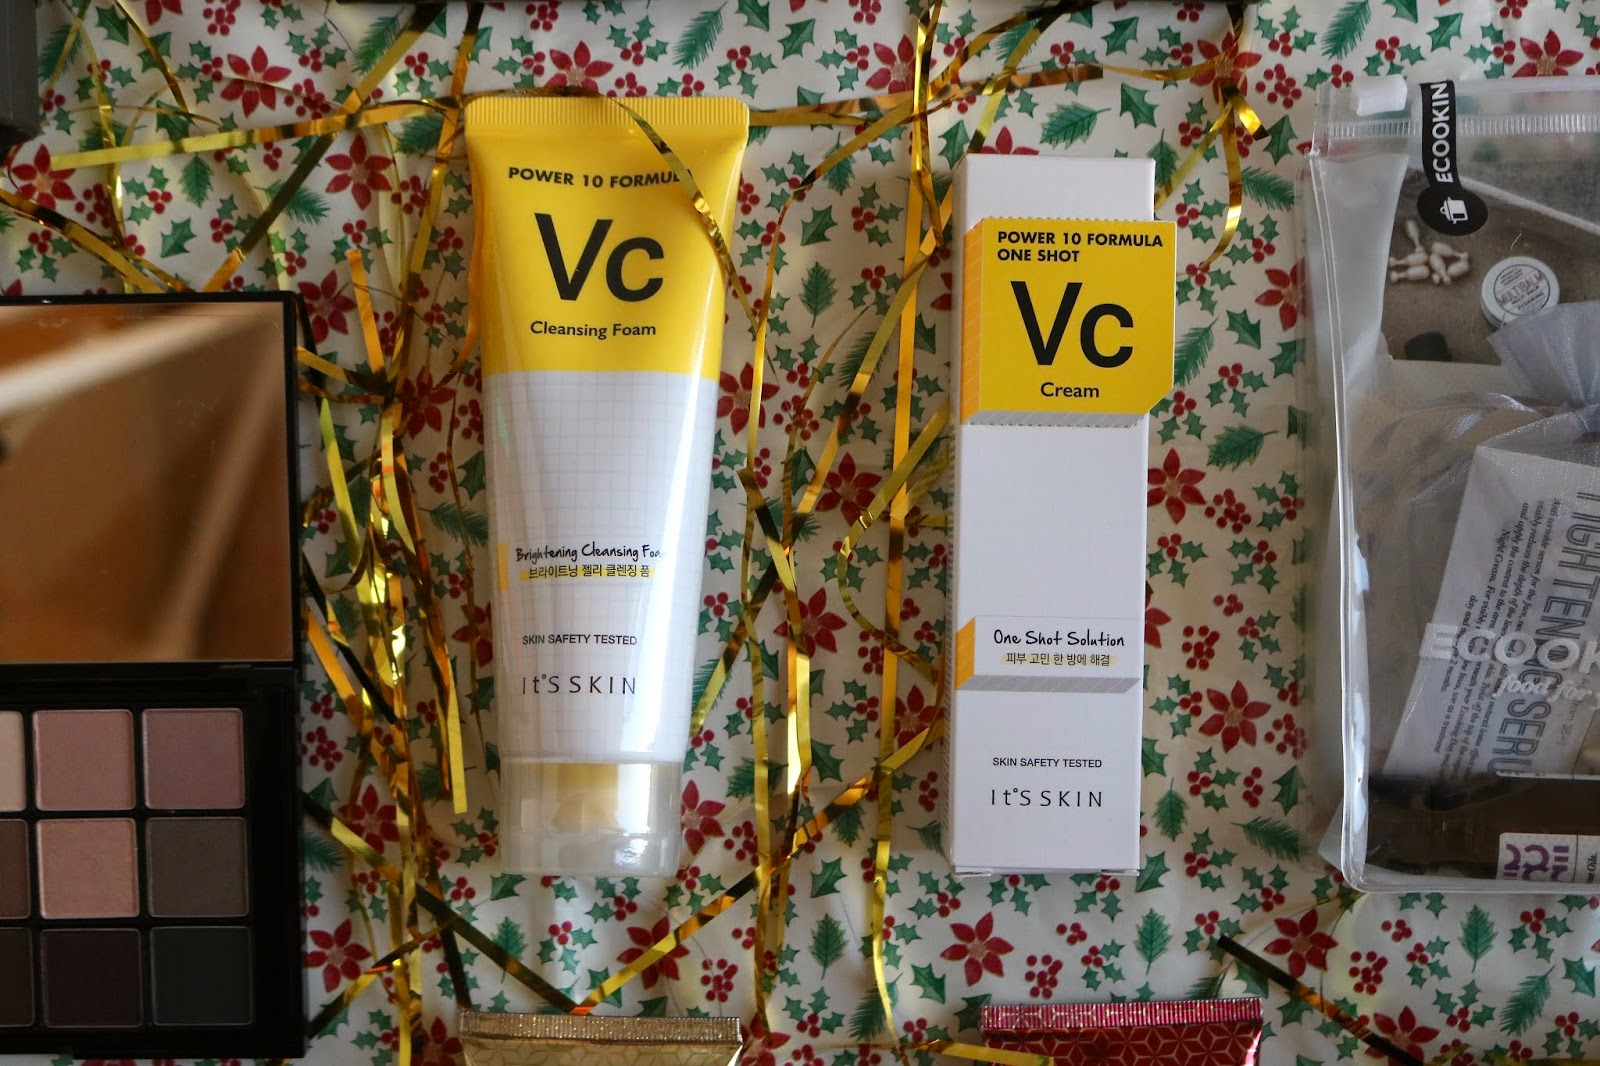 IT'S SKIN POWER 10 VC FACE CLEANSING FOAM AND ONE SHOT SOLUTION MOISTURISER